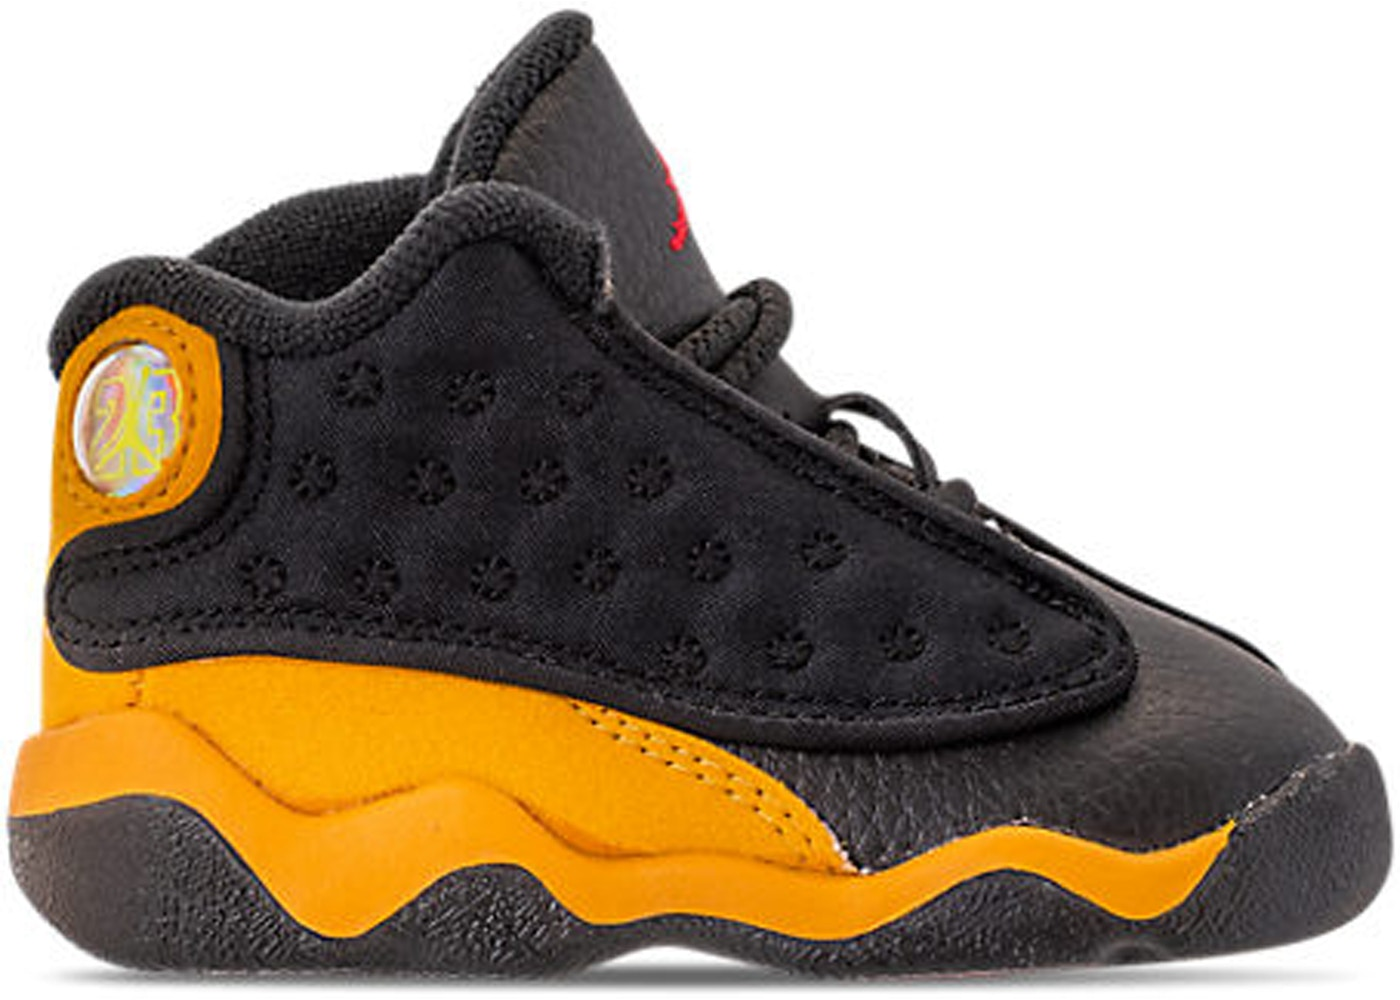 d7ad374a3c70 Buy Air Jordan 13 Shoes   Deadstock Sneakers